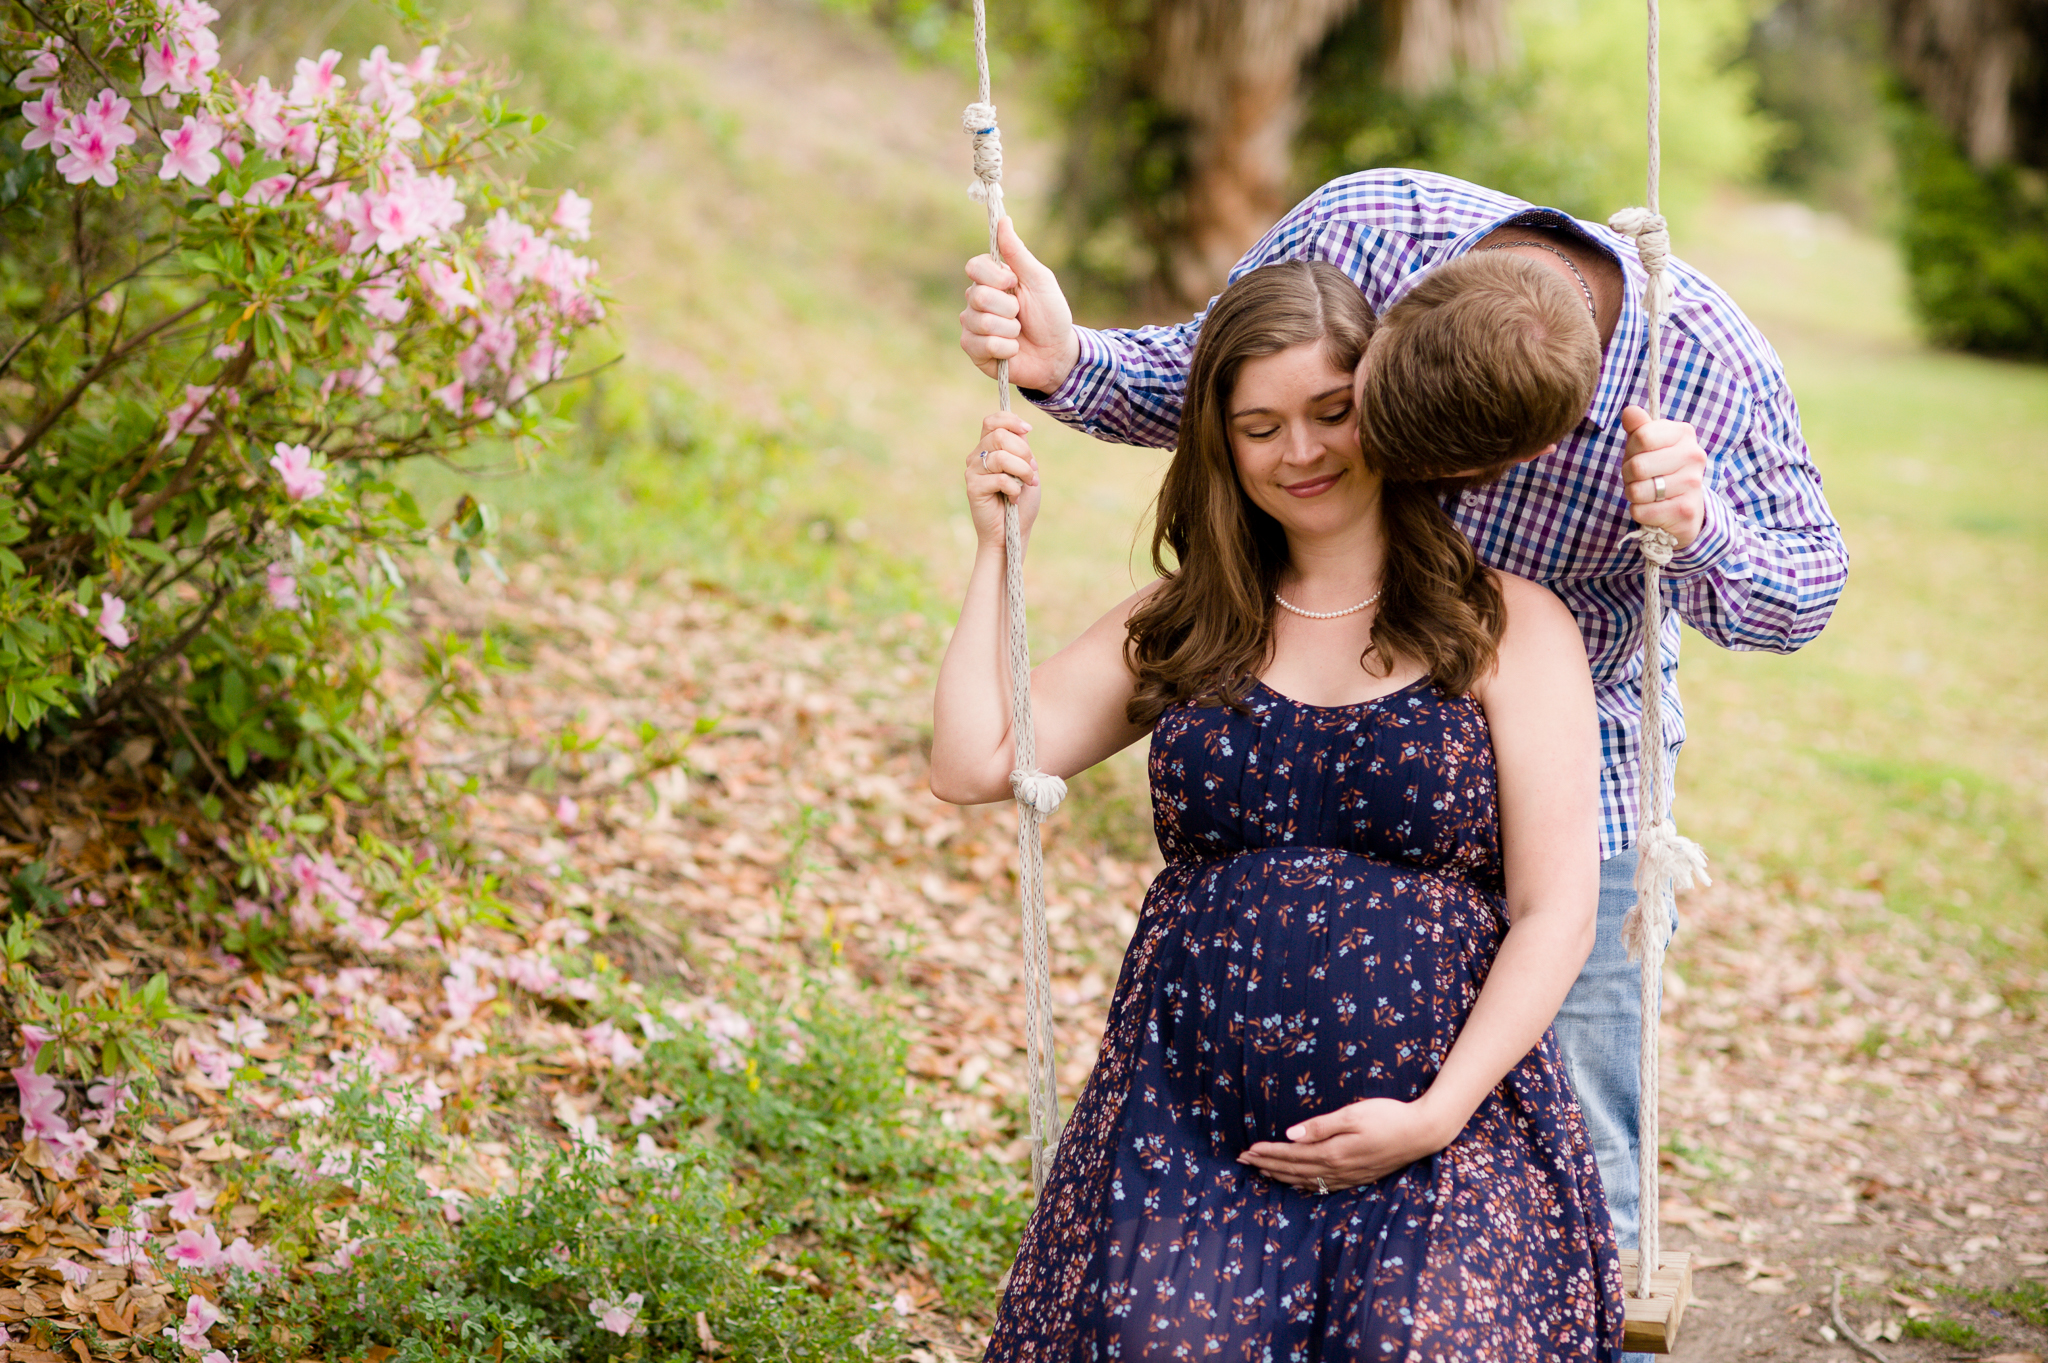 beaufort-south-carolina-maternity-portraits-2449.JPG